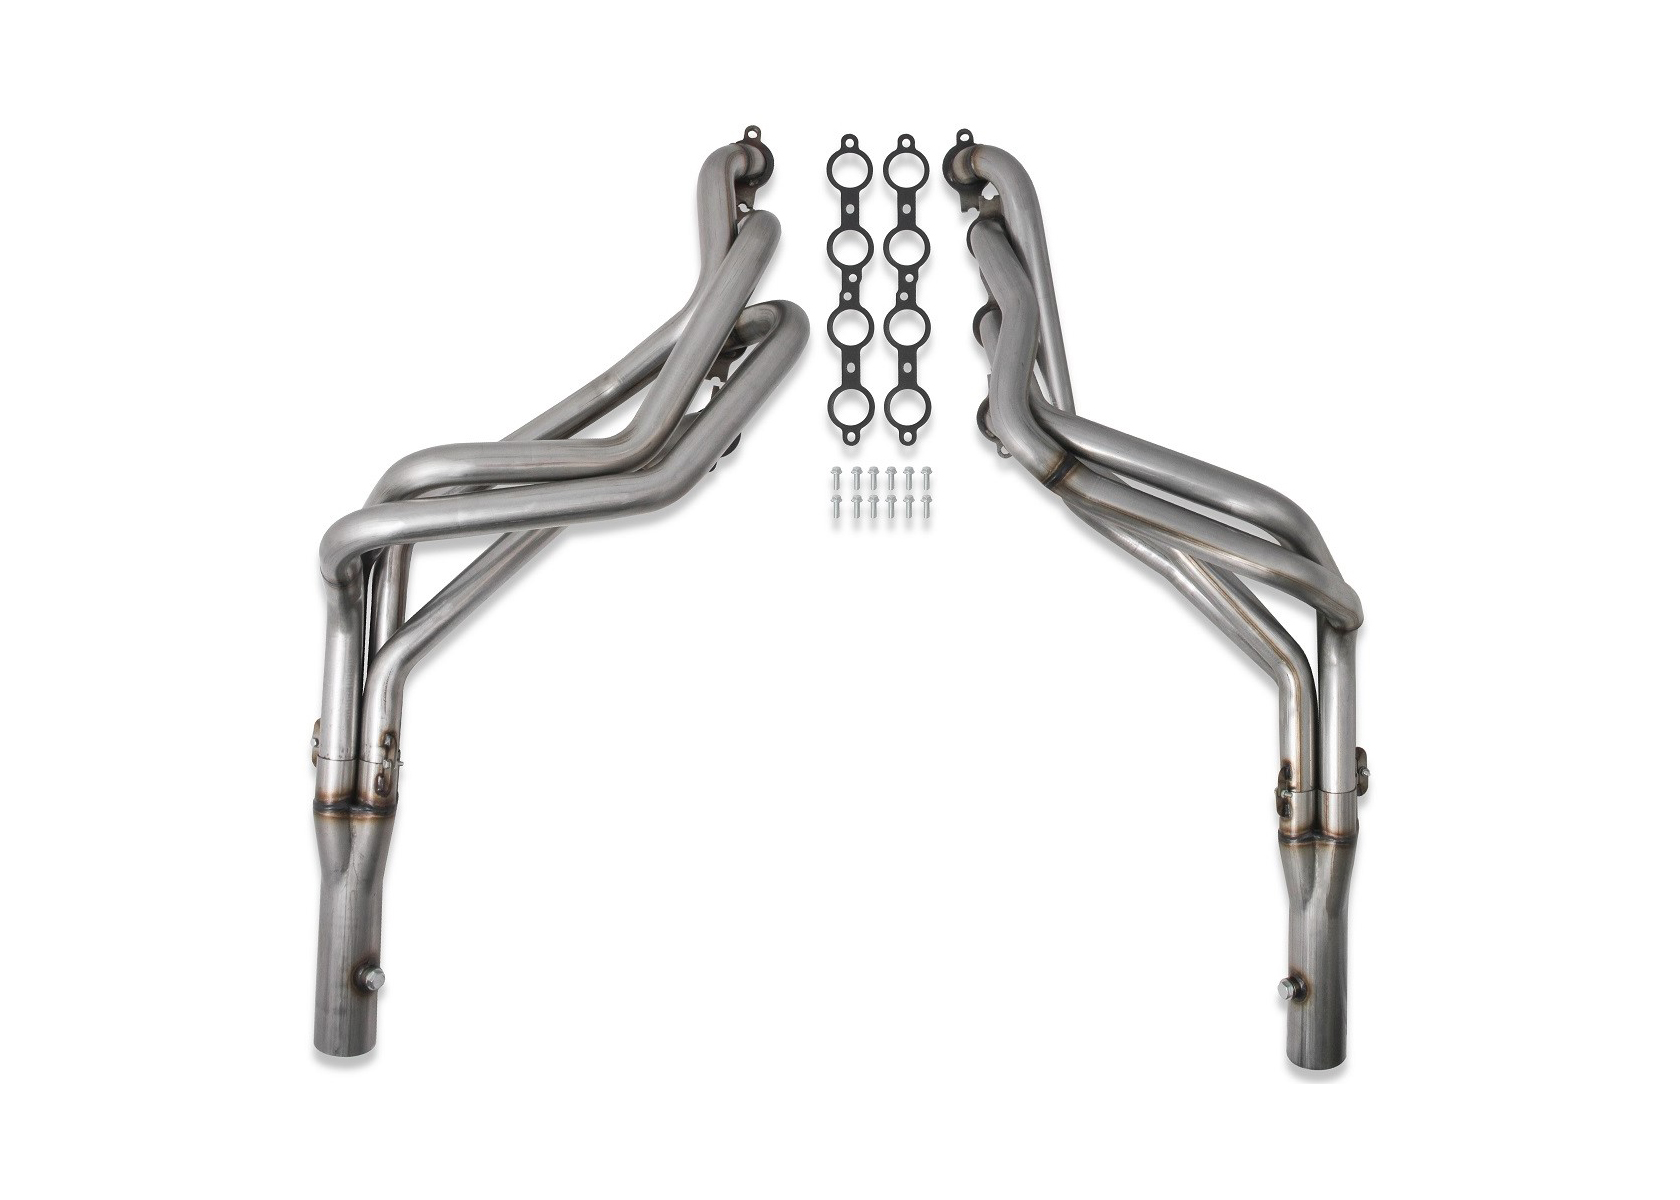 Flowtech Announces Ls Swap Headers For S10